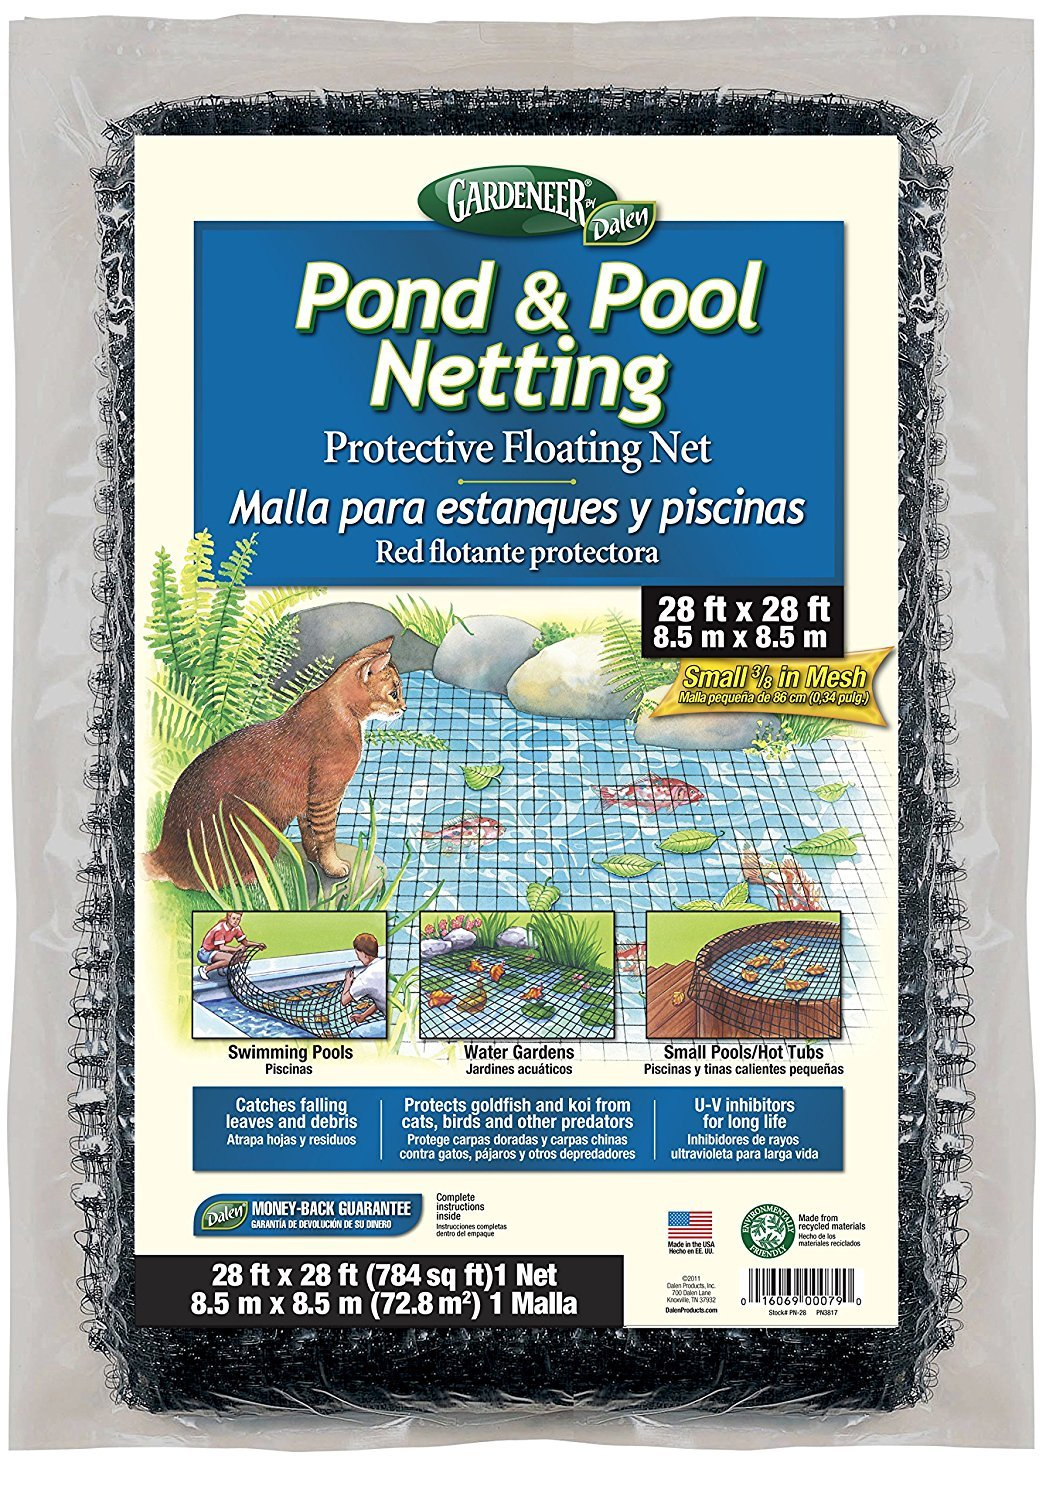 Gardeneer By Dalen Pond & Pool Netting Protective Floating Net 28' x 28' (3 pack) by Dalen